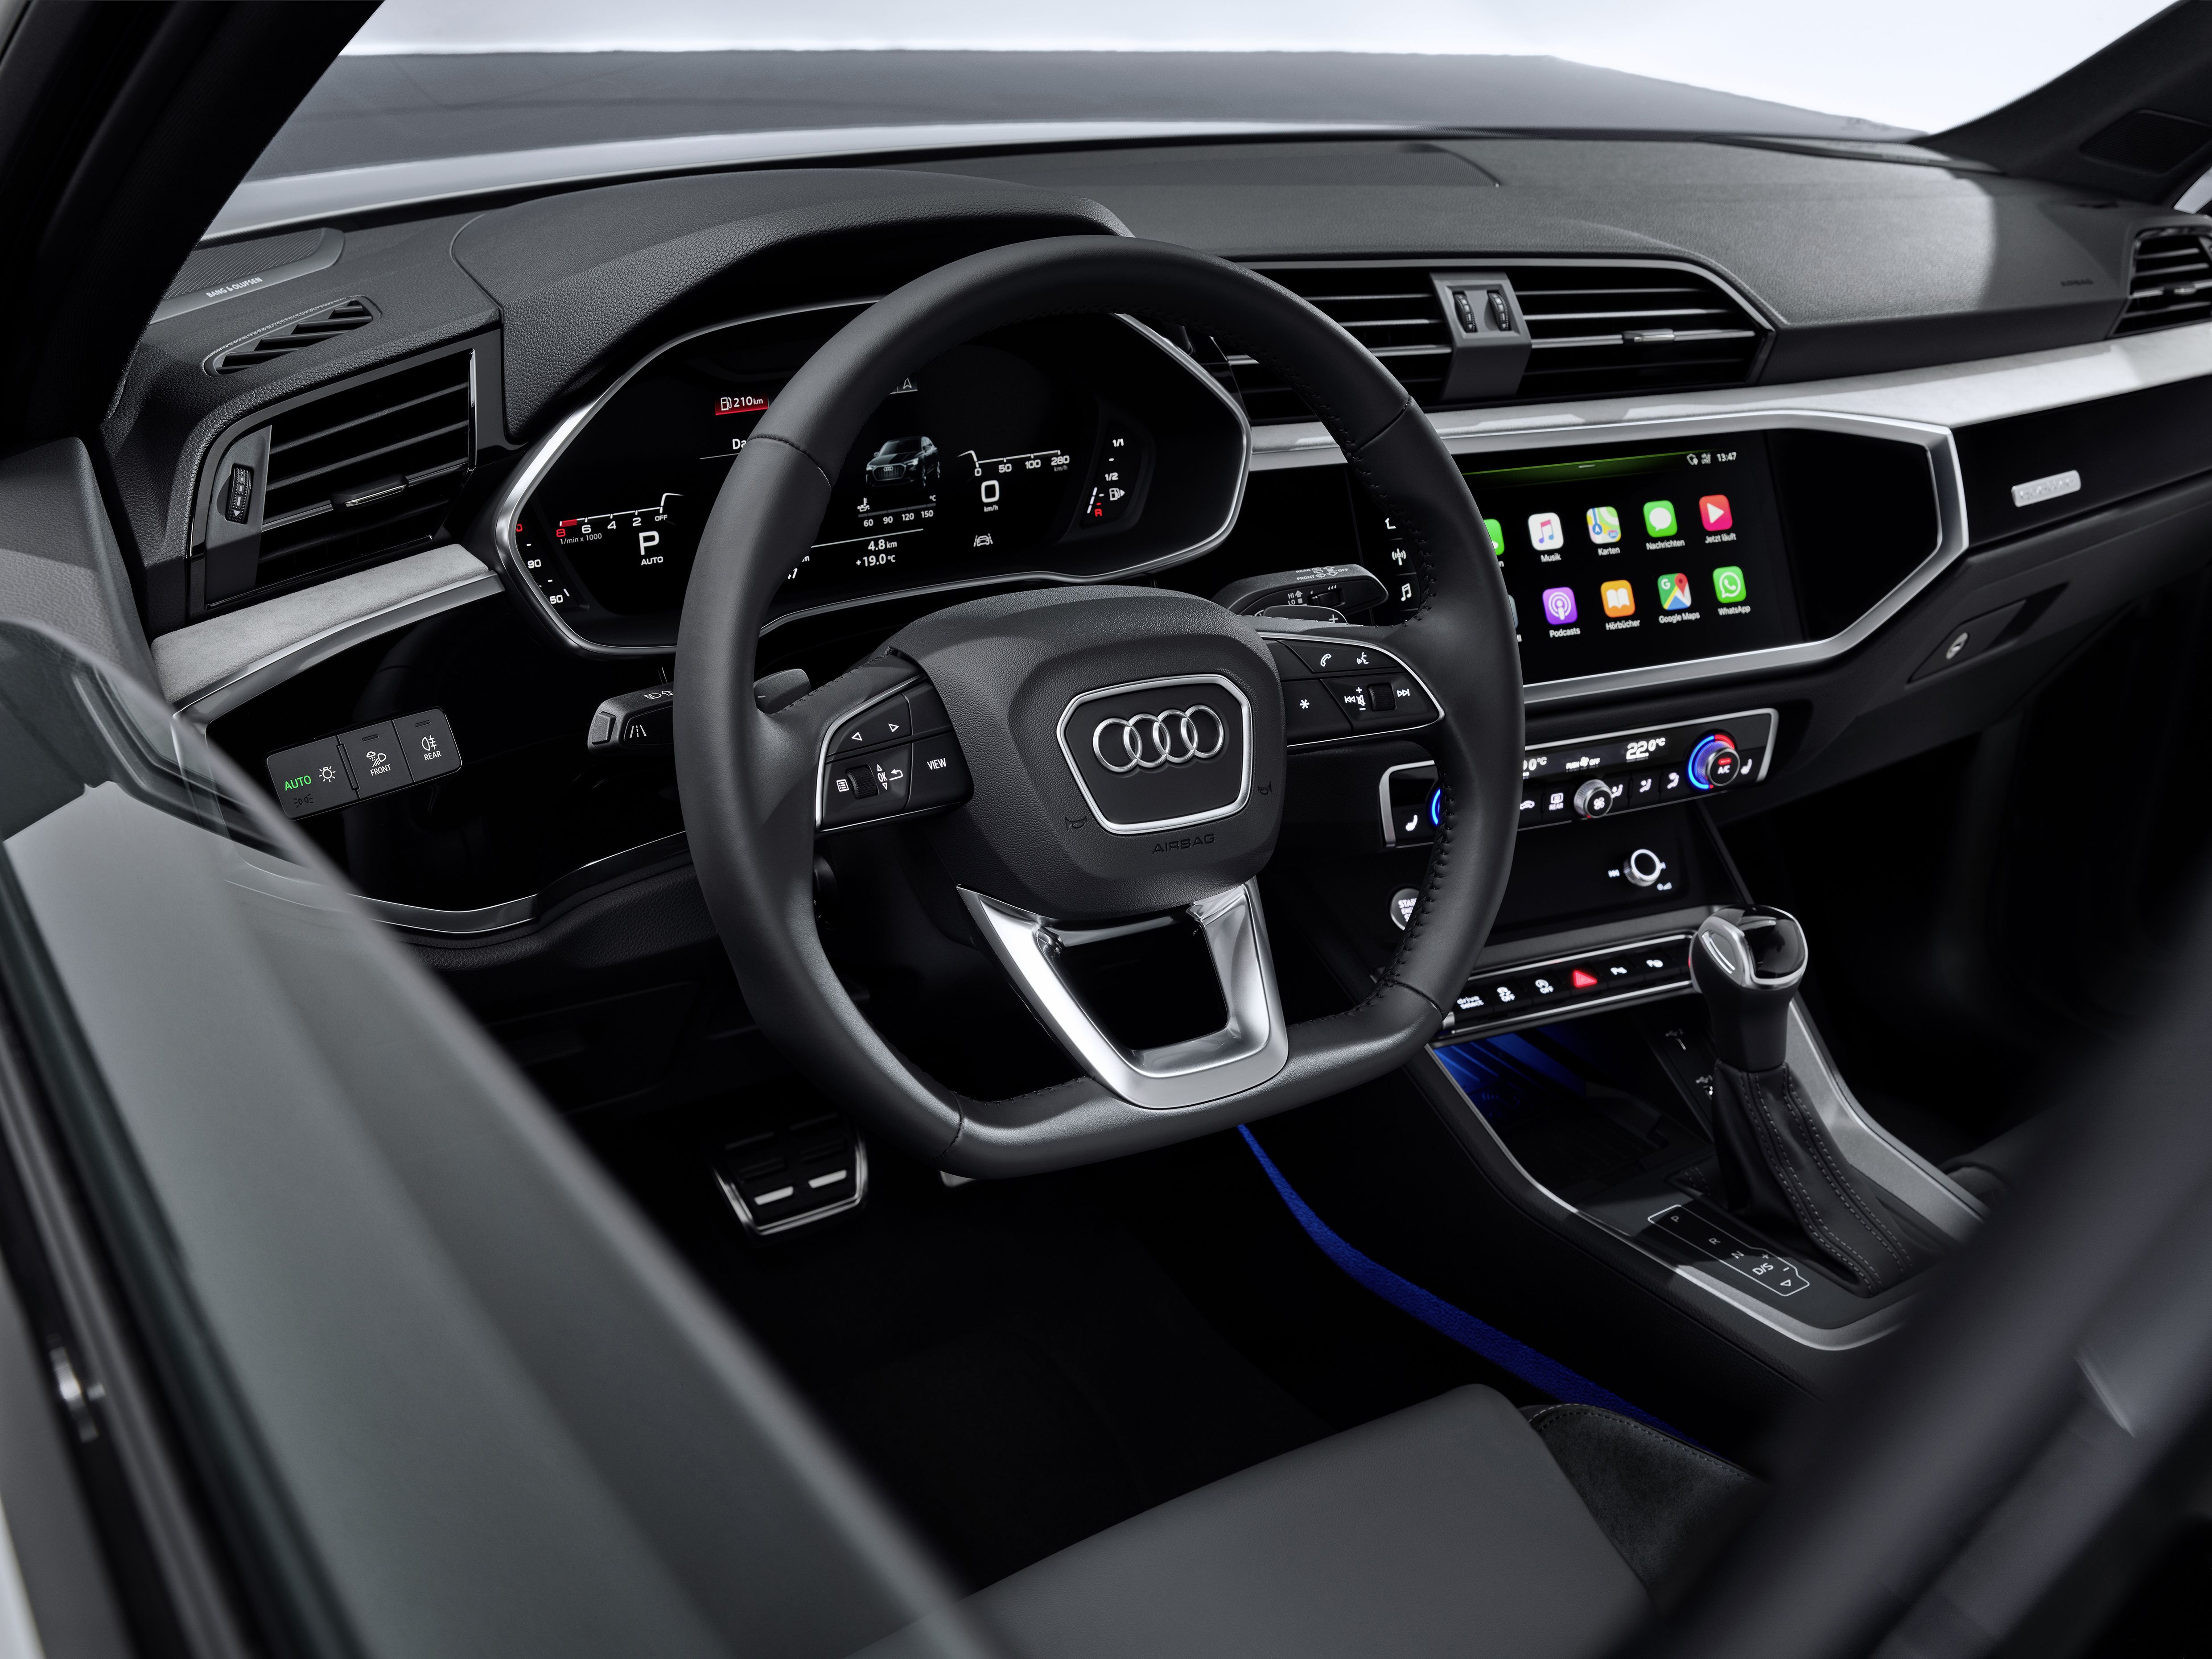 2020 Audi Q3 Sportback Interior Exterior And Driveaudi Is Adding A Compact Suv In Coupe Shape To Its Model Range The 2020 Audi Q3 Comes With Two Row Seating Co